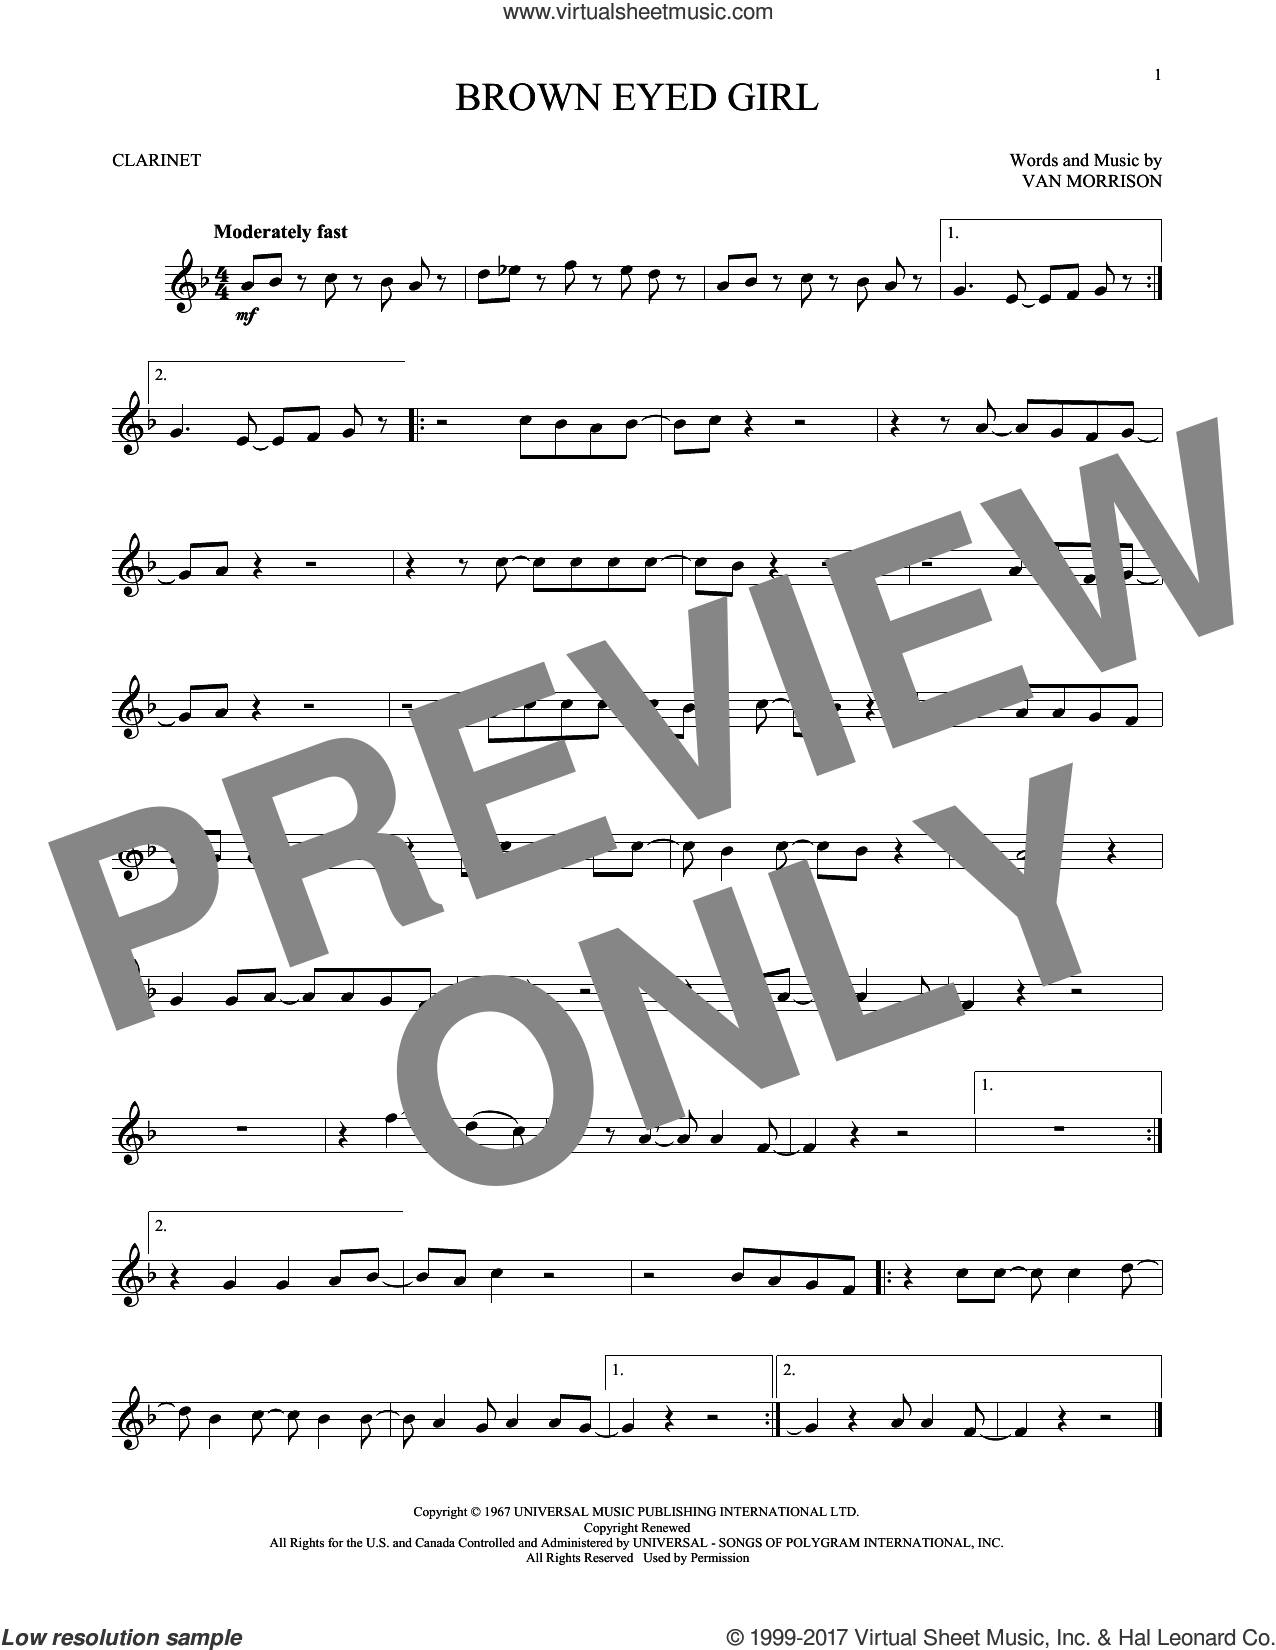 Brown Eyed Girl sheet music for clarinet solo by Van Morrison, intermediate skill level